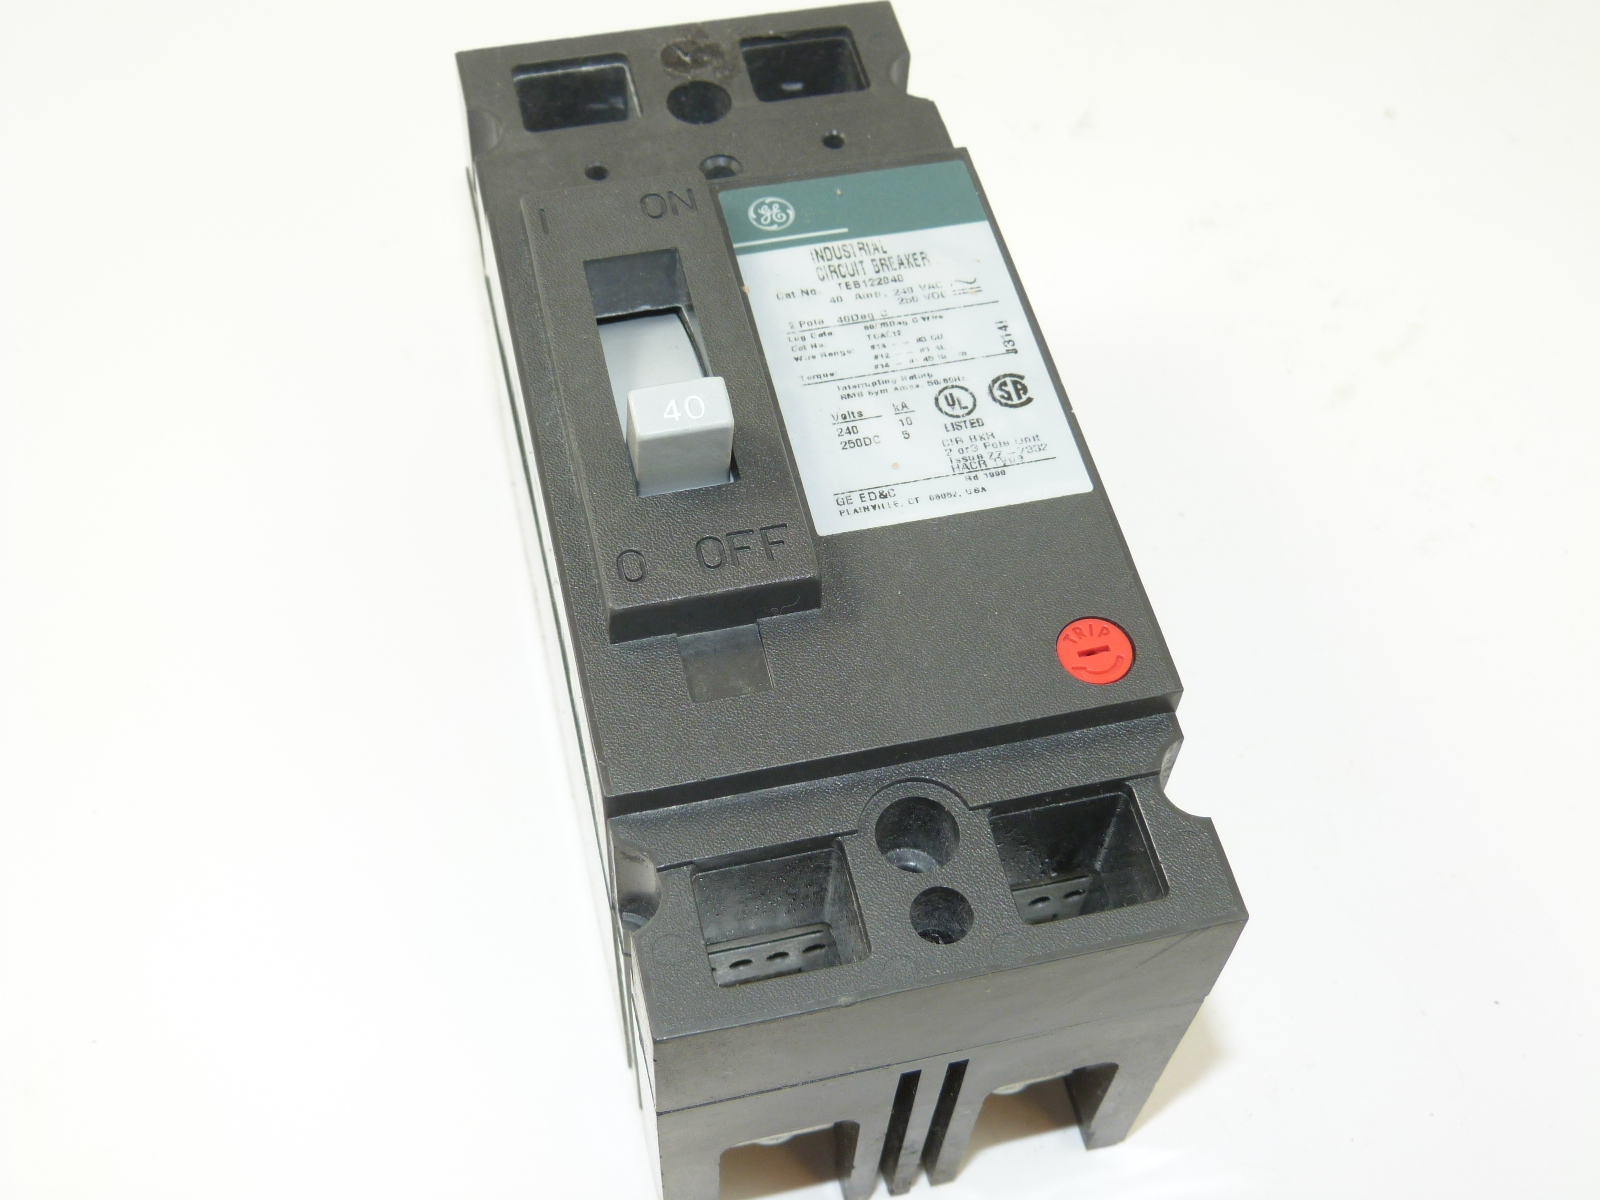 Crouse Hinds Circuit Breaker Replacement Guide And Troubleshooting Zinsco Breakers New Used Obsolete Breakerconnection General Electric Lighting Contactors Panel Boards Motor Control Other Bus